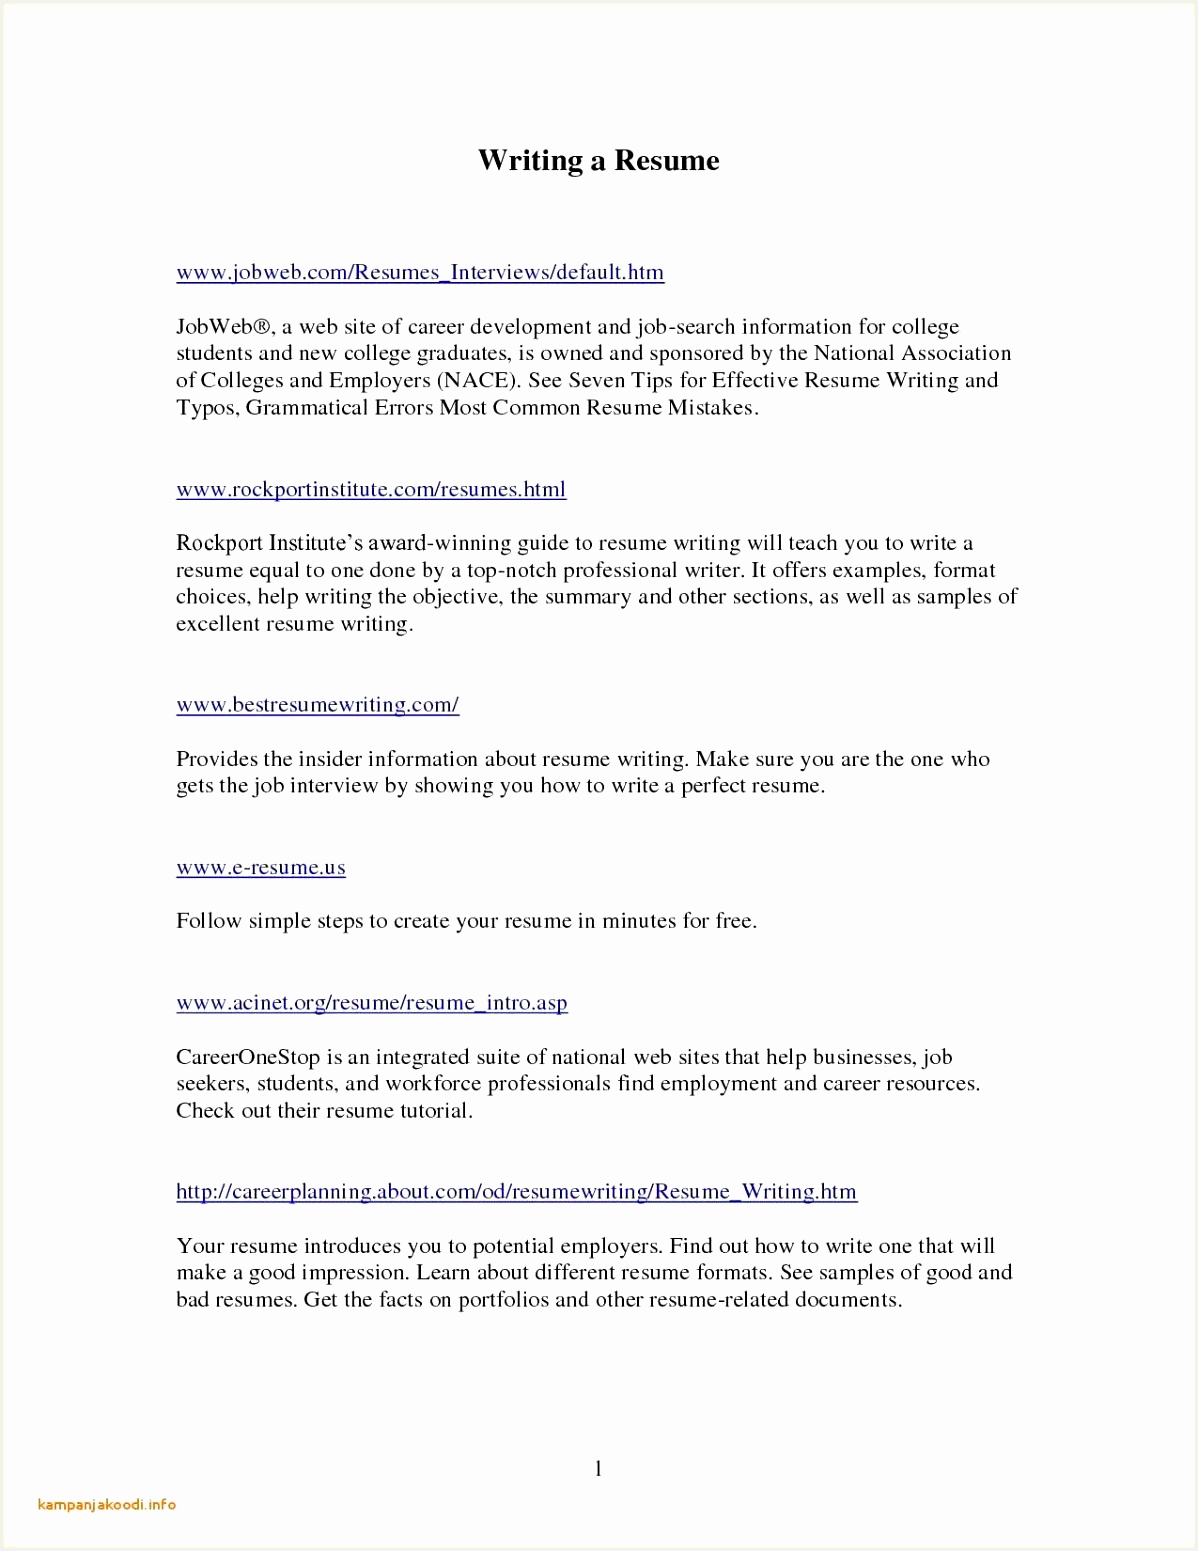 Resume Template On Word 2010 Lzpij Lovely Business Letter format Template Word 2010 Awesome Unique Resume Of 5 Resume Template On Word 2010